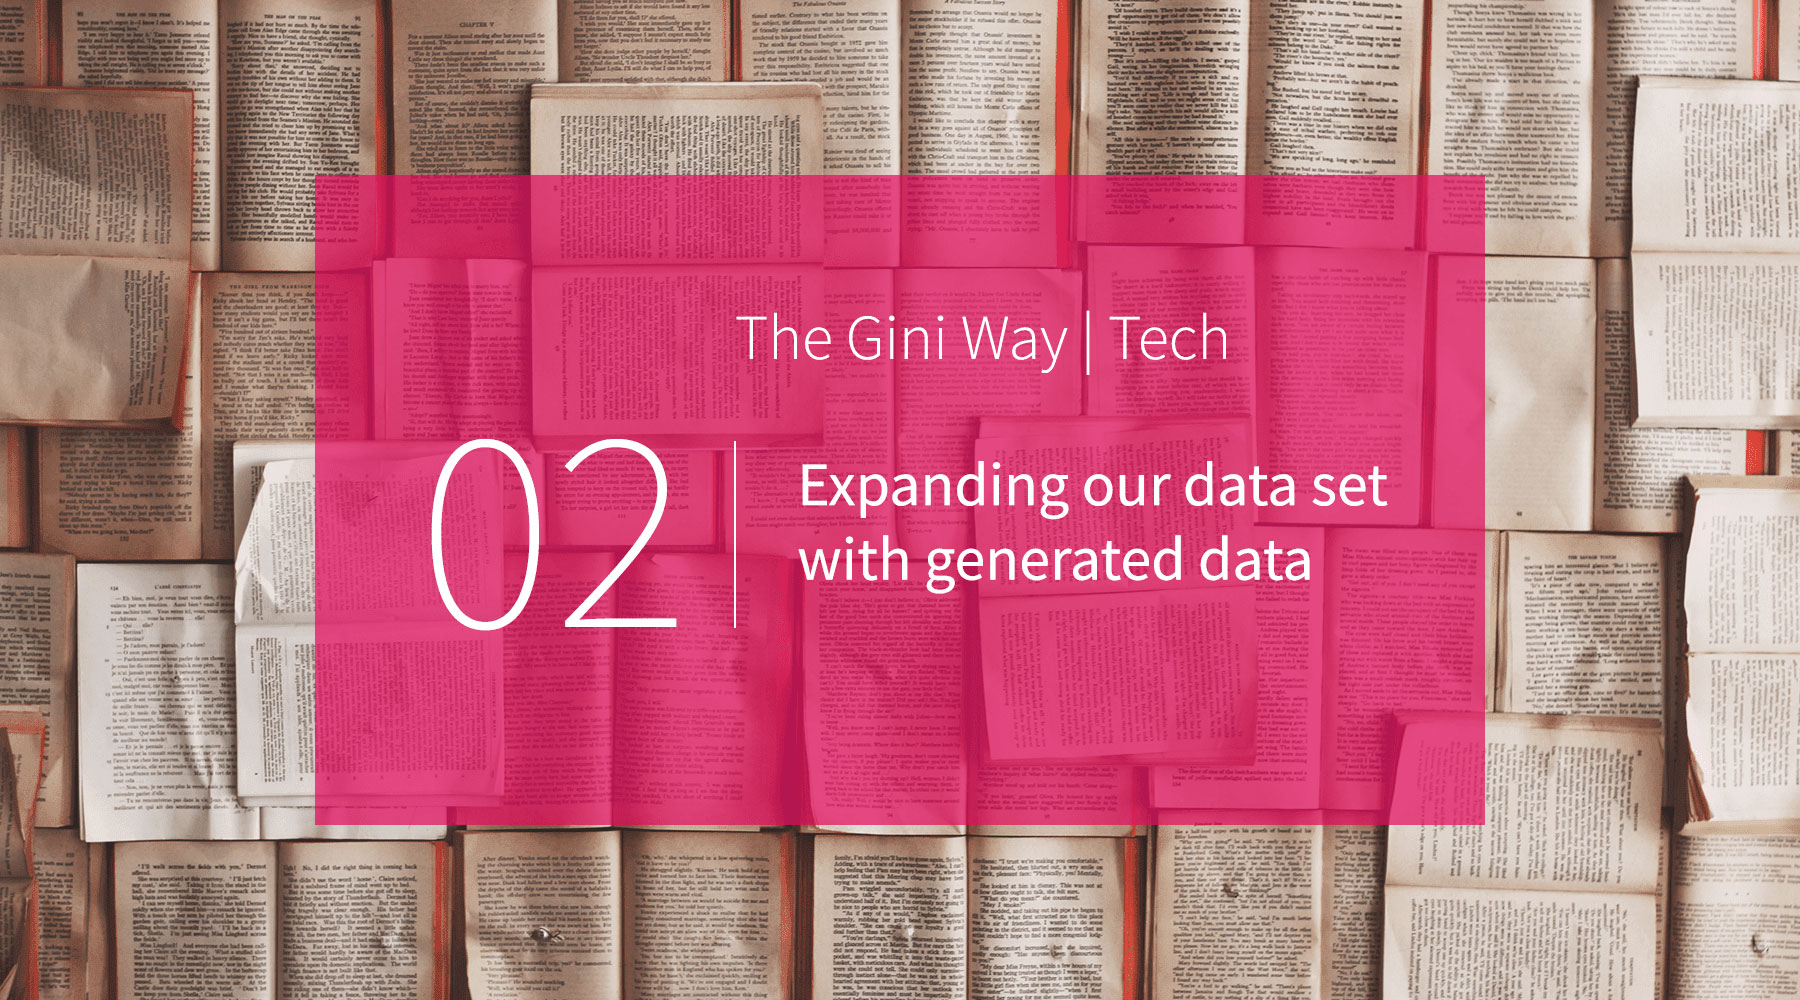 Expanding our data set with generated data